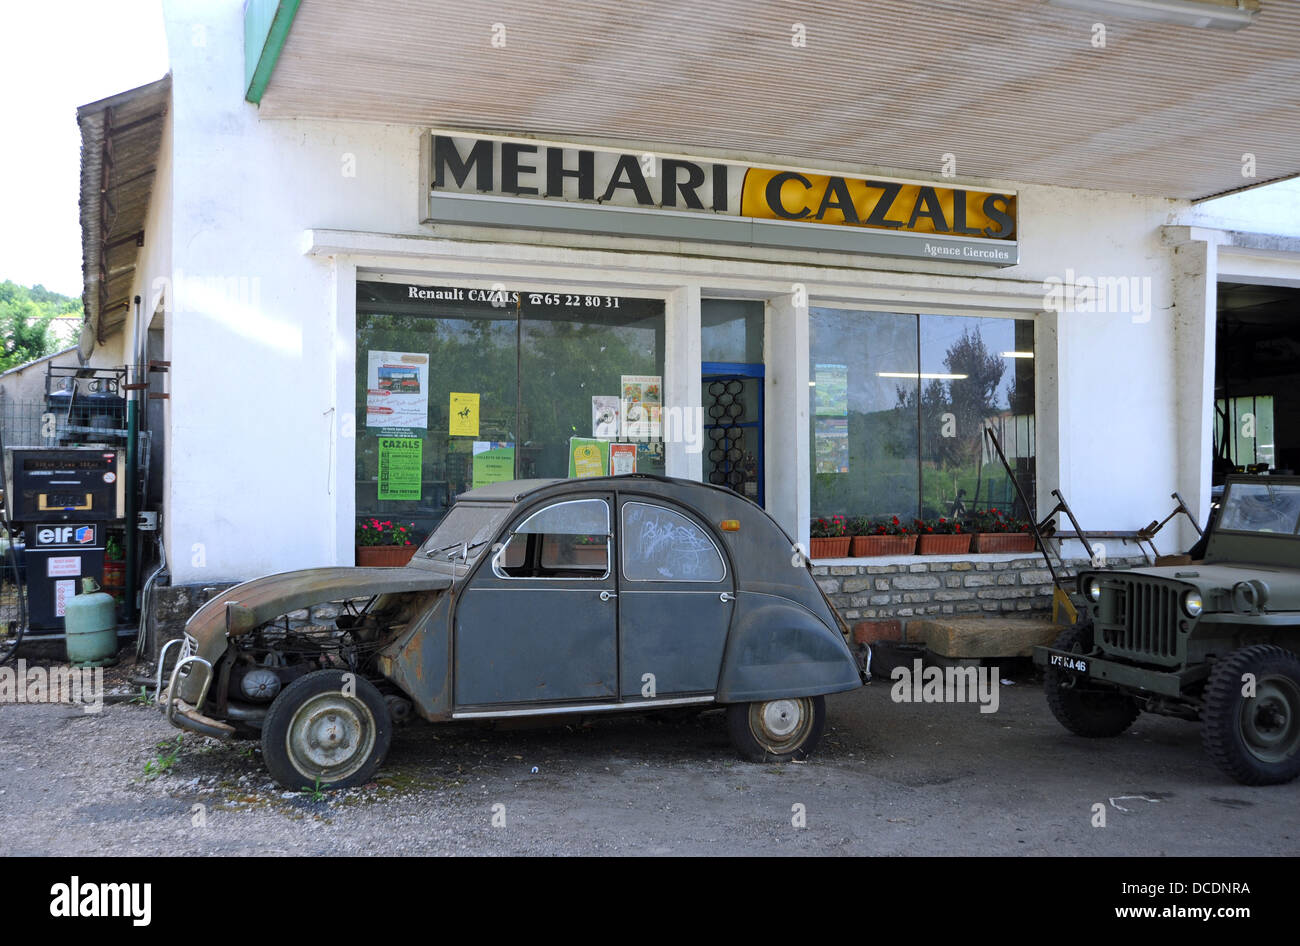 old citroen 2cv car stockfotos old citroen 2cv car bilder alamy. Black Bedroom Furniture Sets. Home Design Ideas